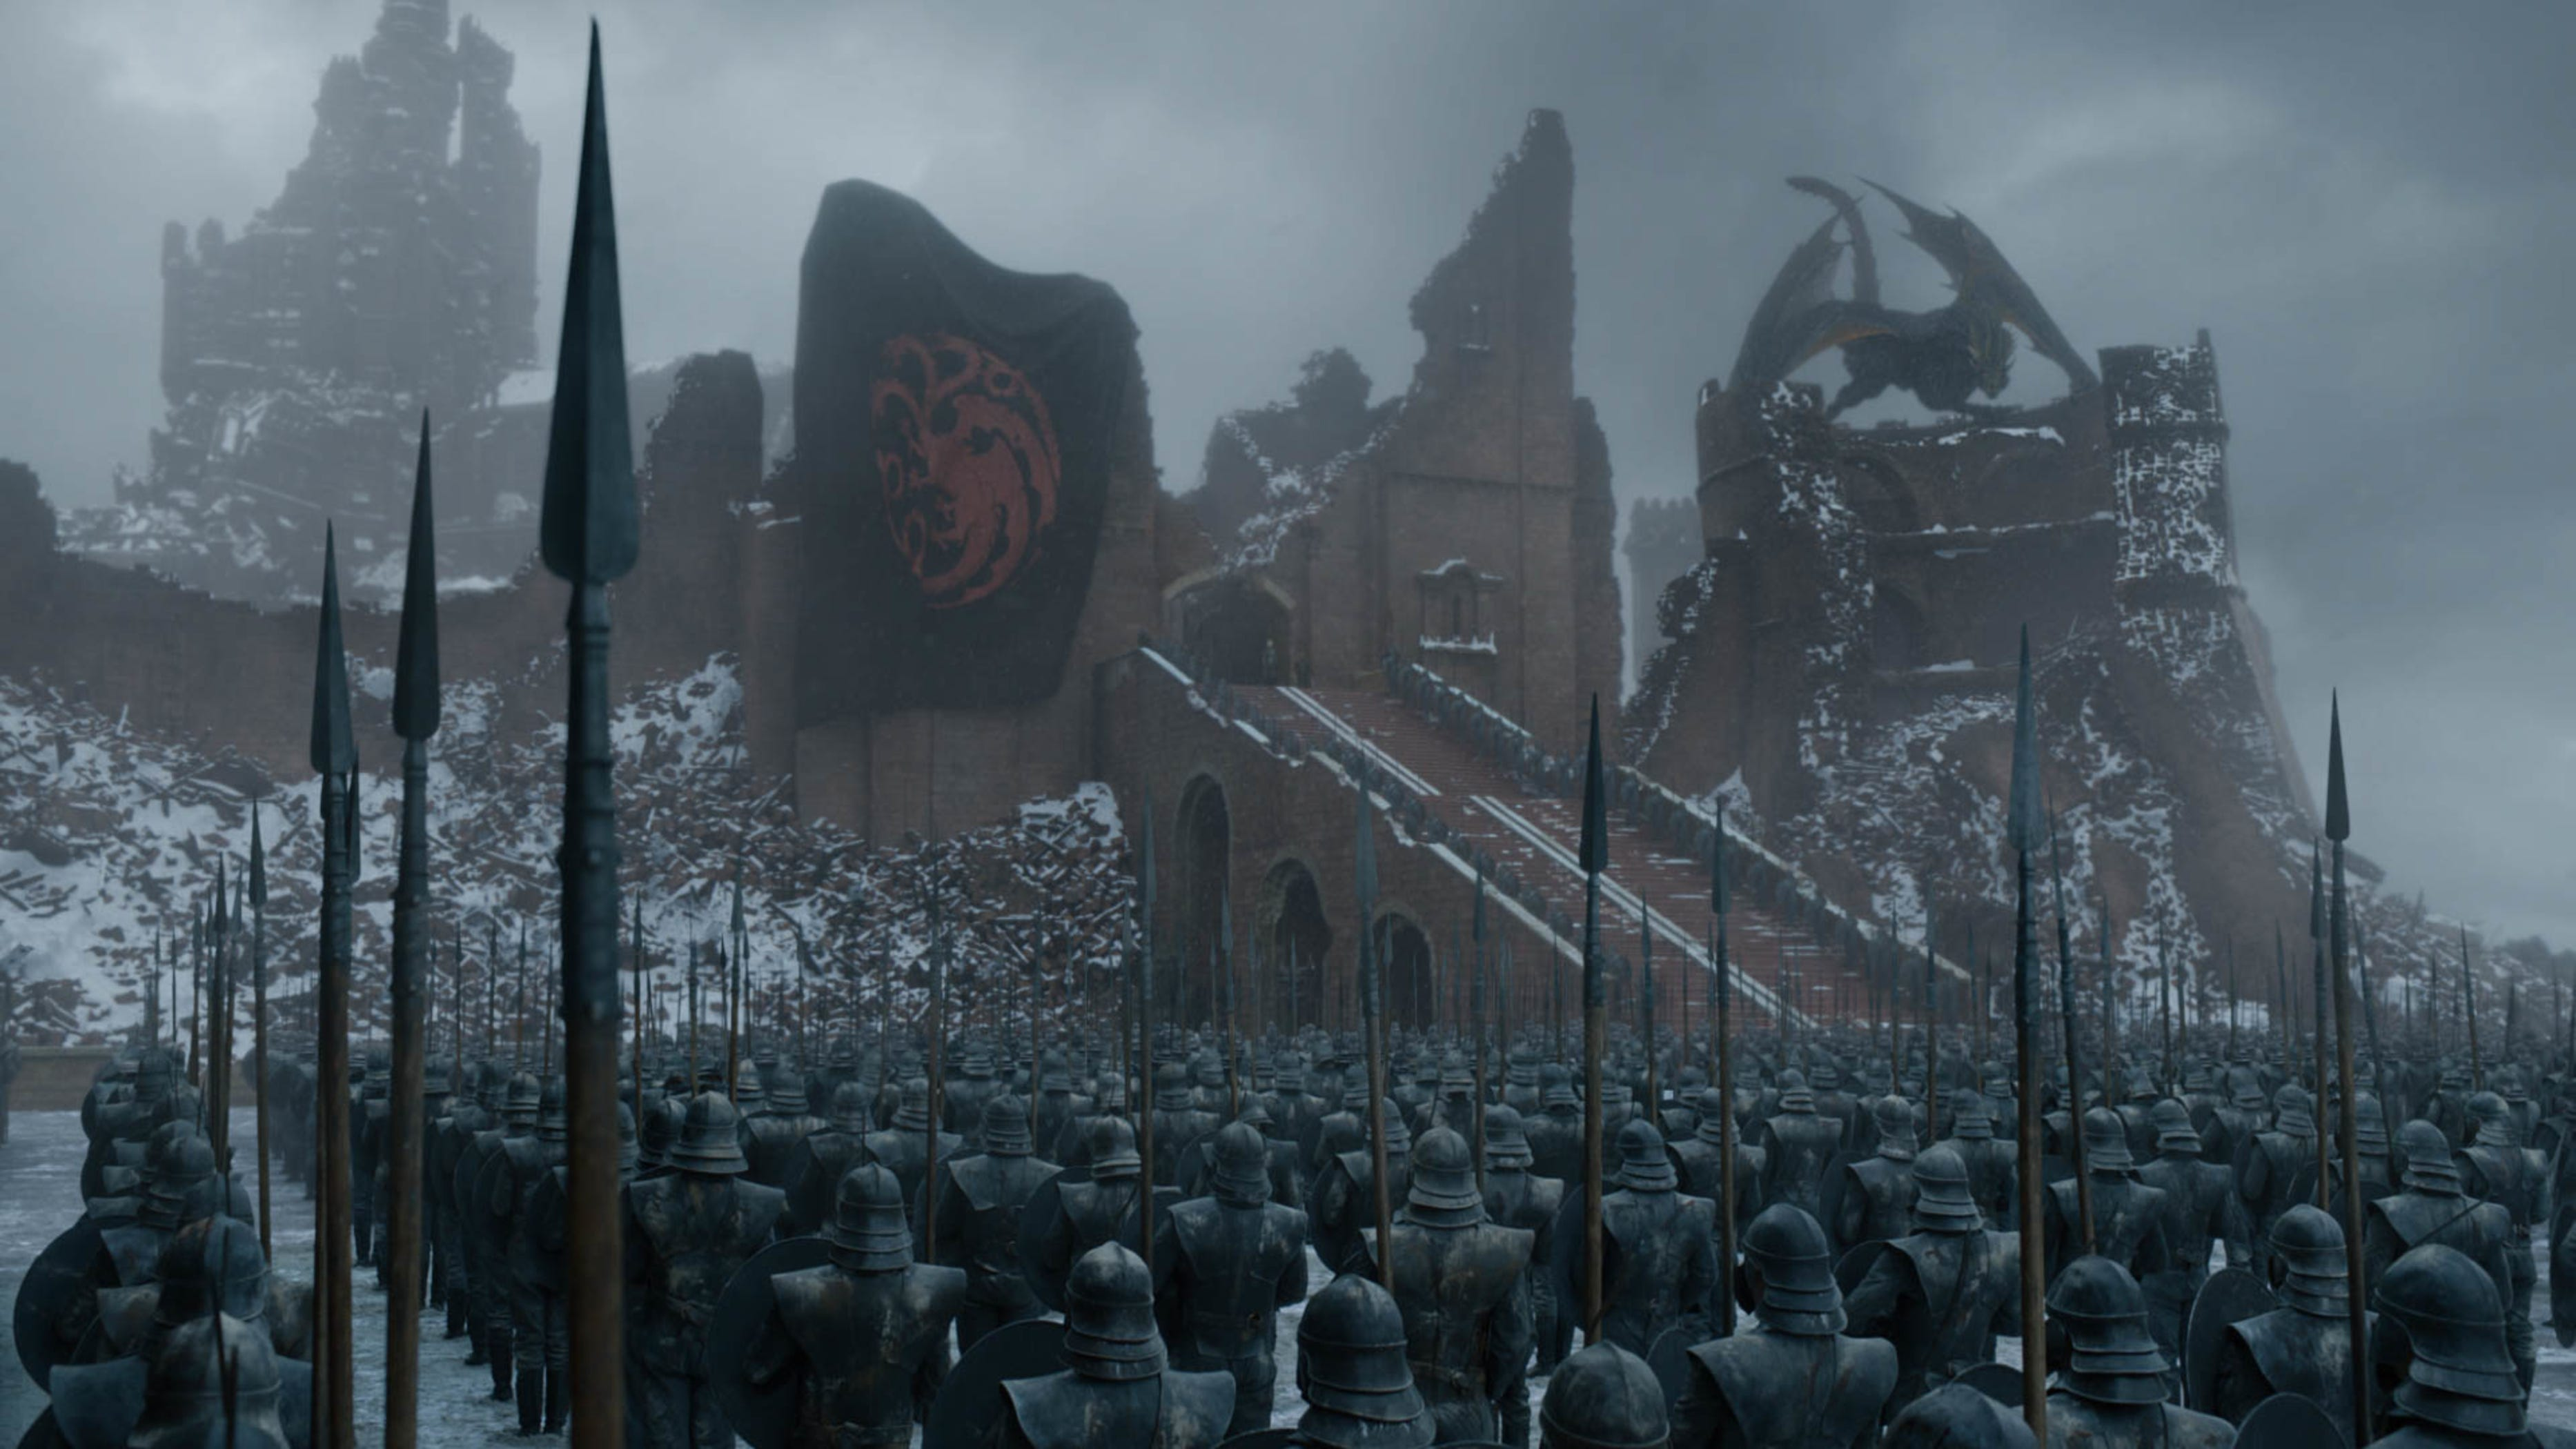 Drogon's Game of Thrones Ending Is Clearer If You Remember A Key Season 2 Moment